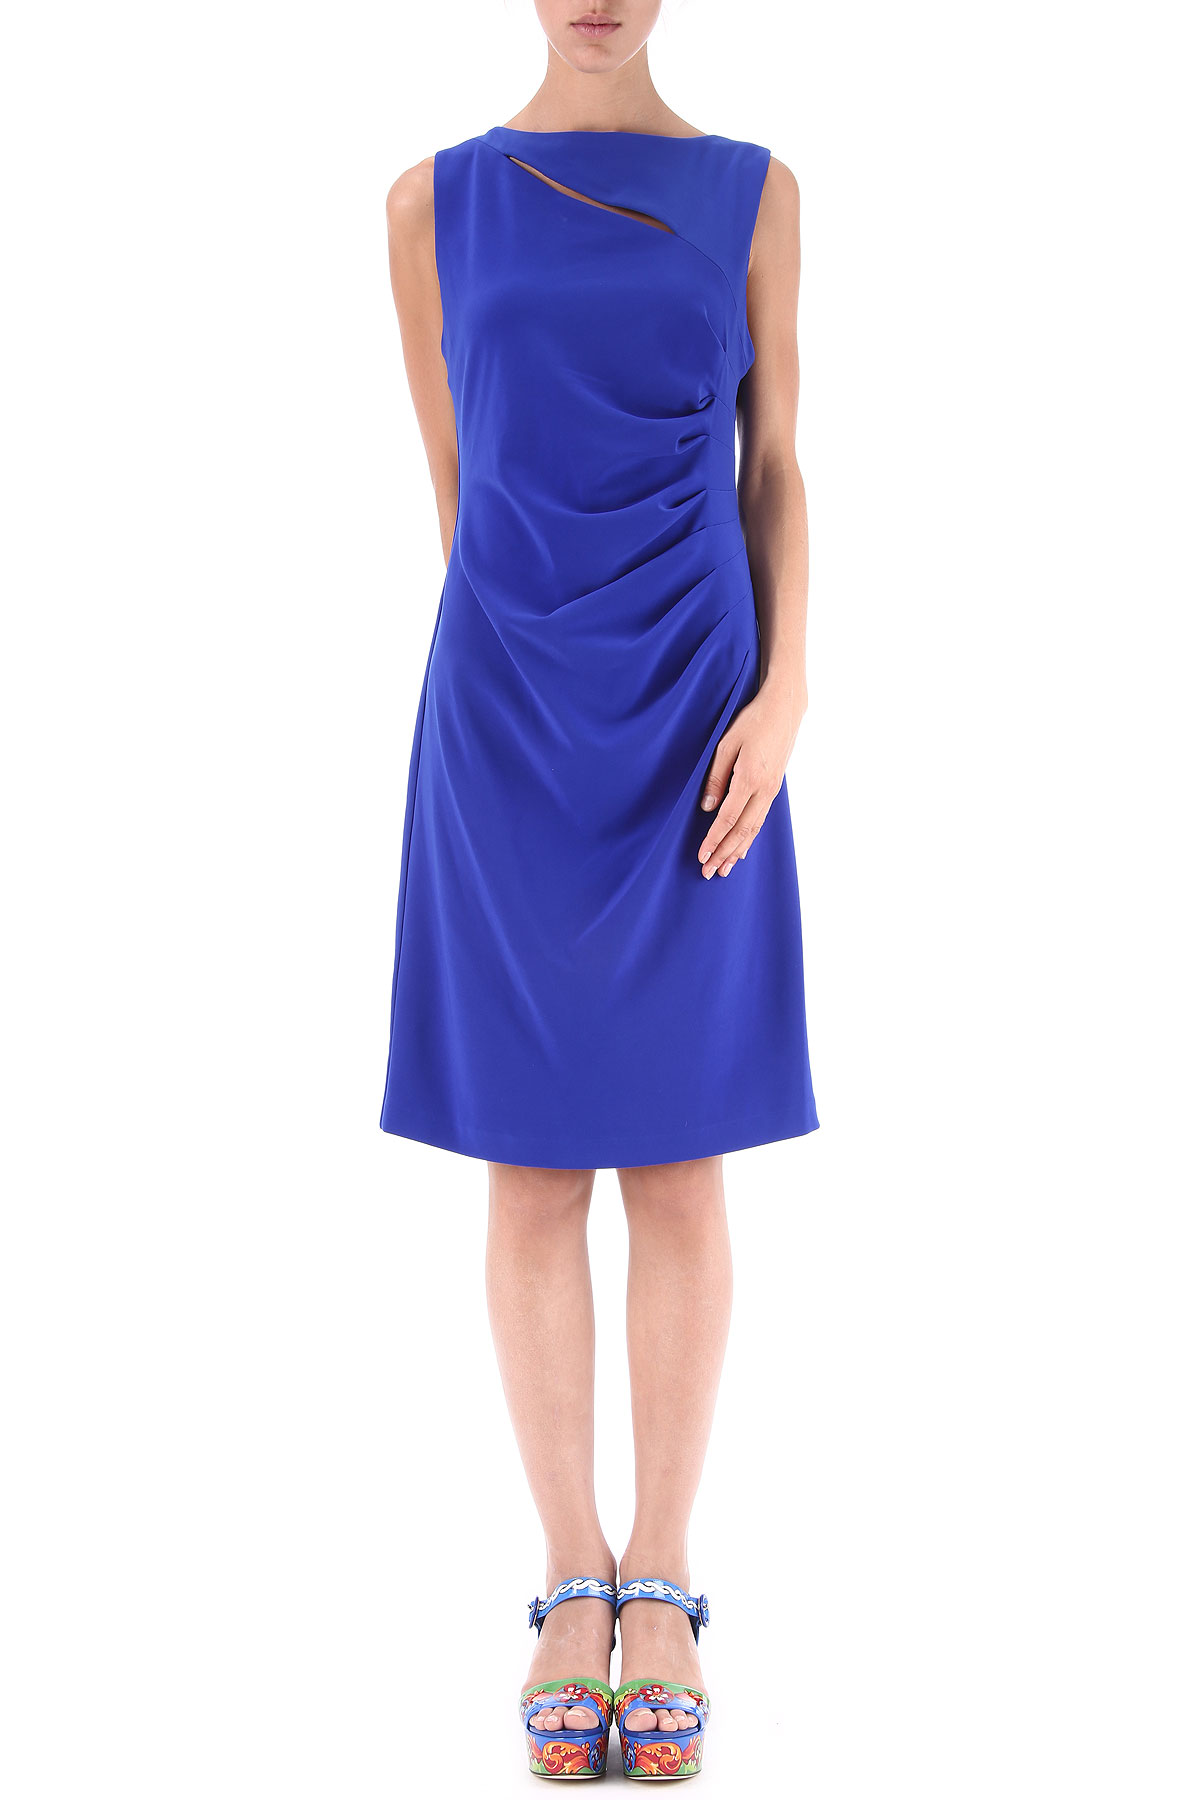 Joseph Ribkoff Dress for Women, Evening Cocktail Party On Sale in Outlet, Royal Blue, polyester, 2017, USA 10 -- IT 44 USA-365981